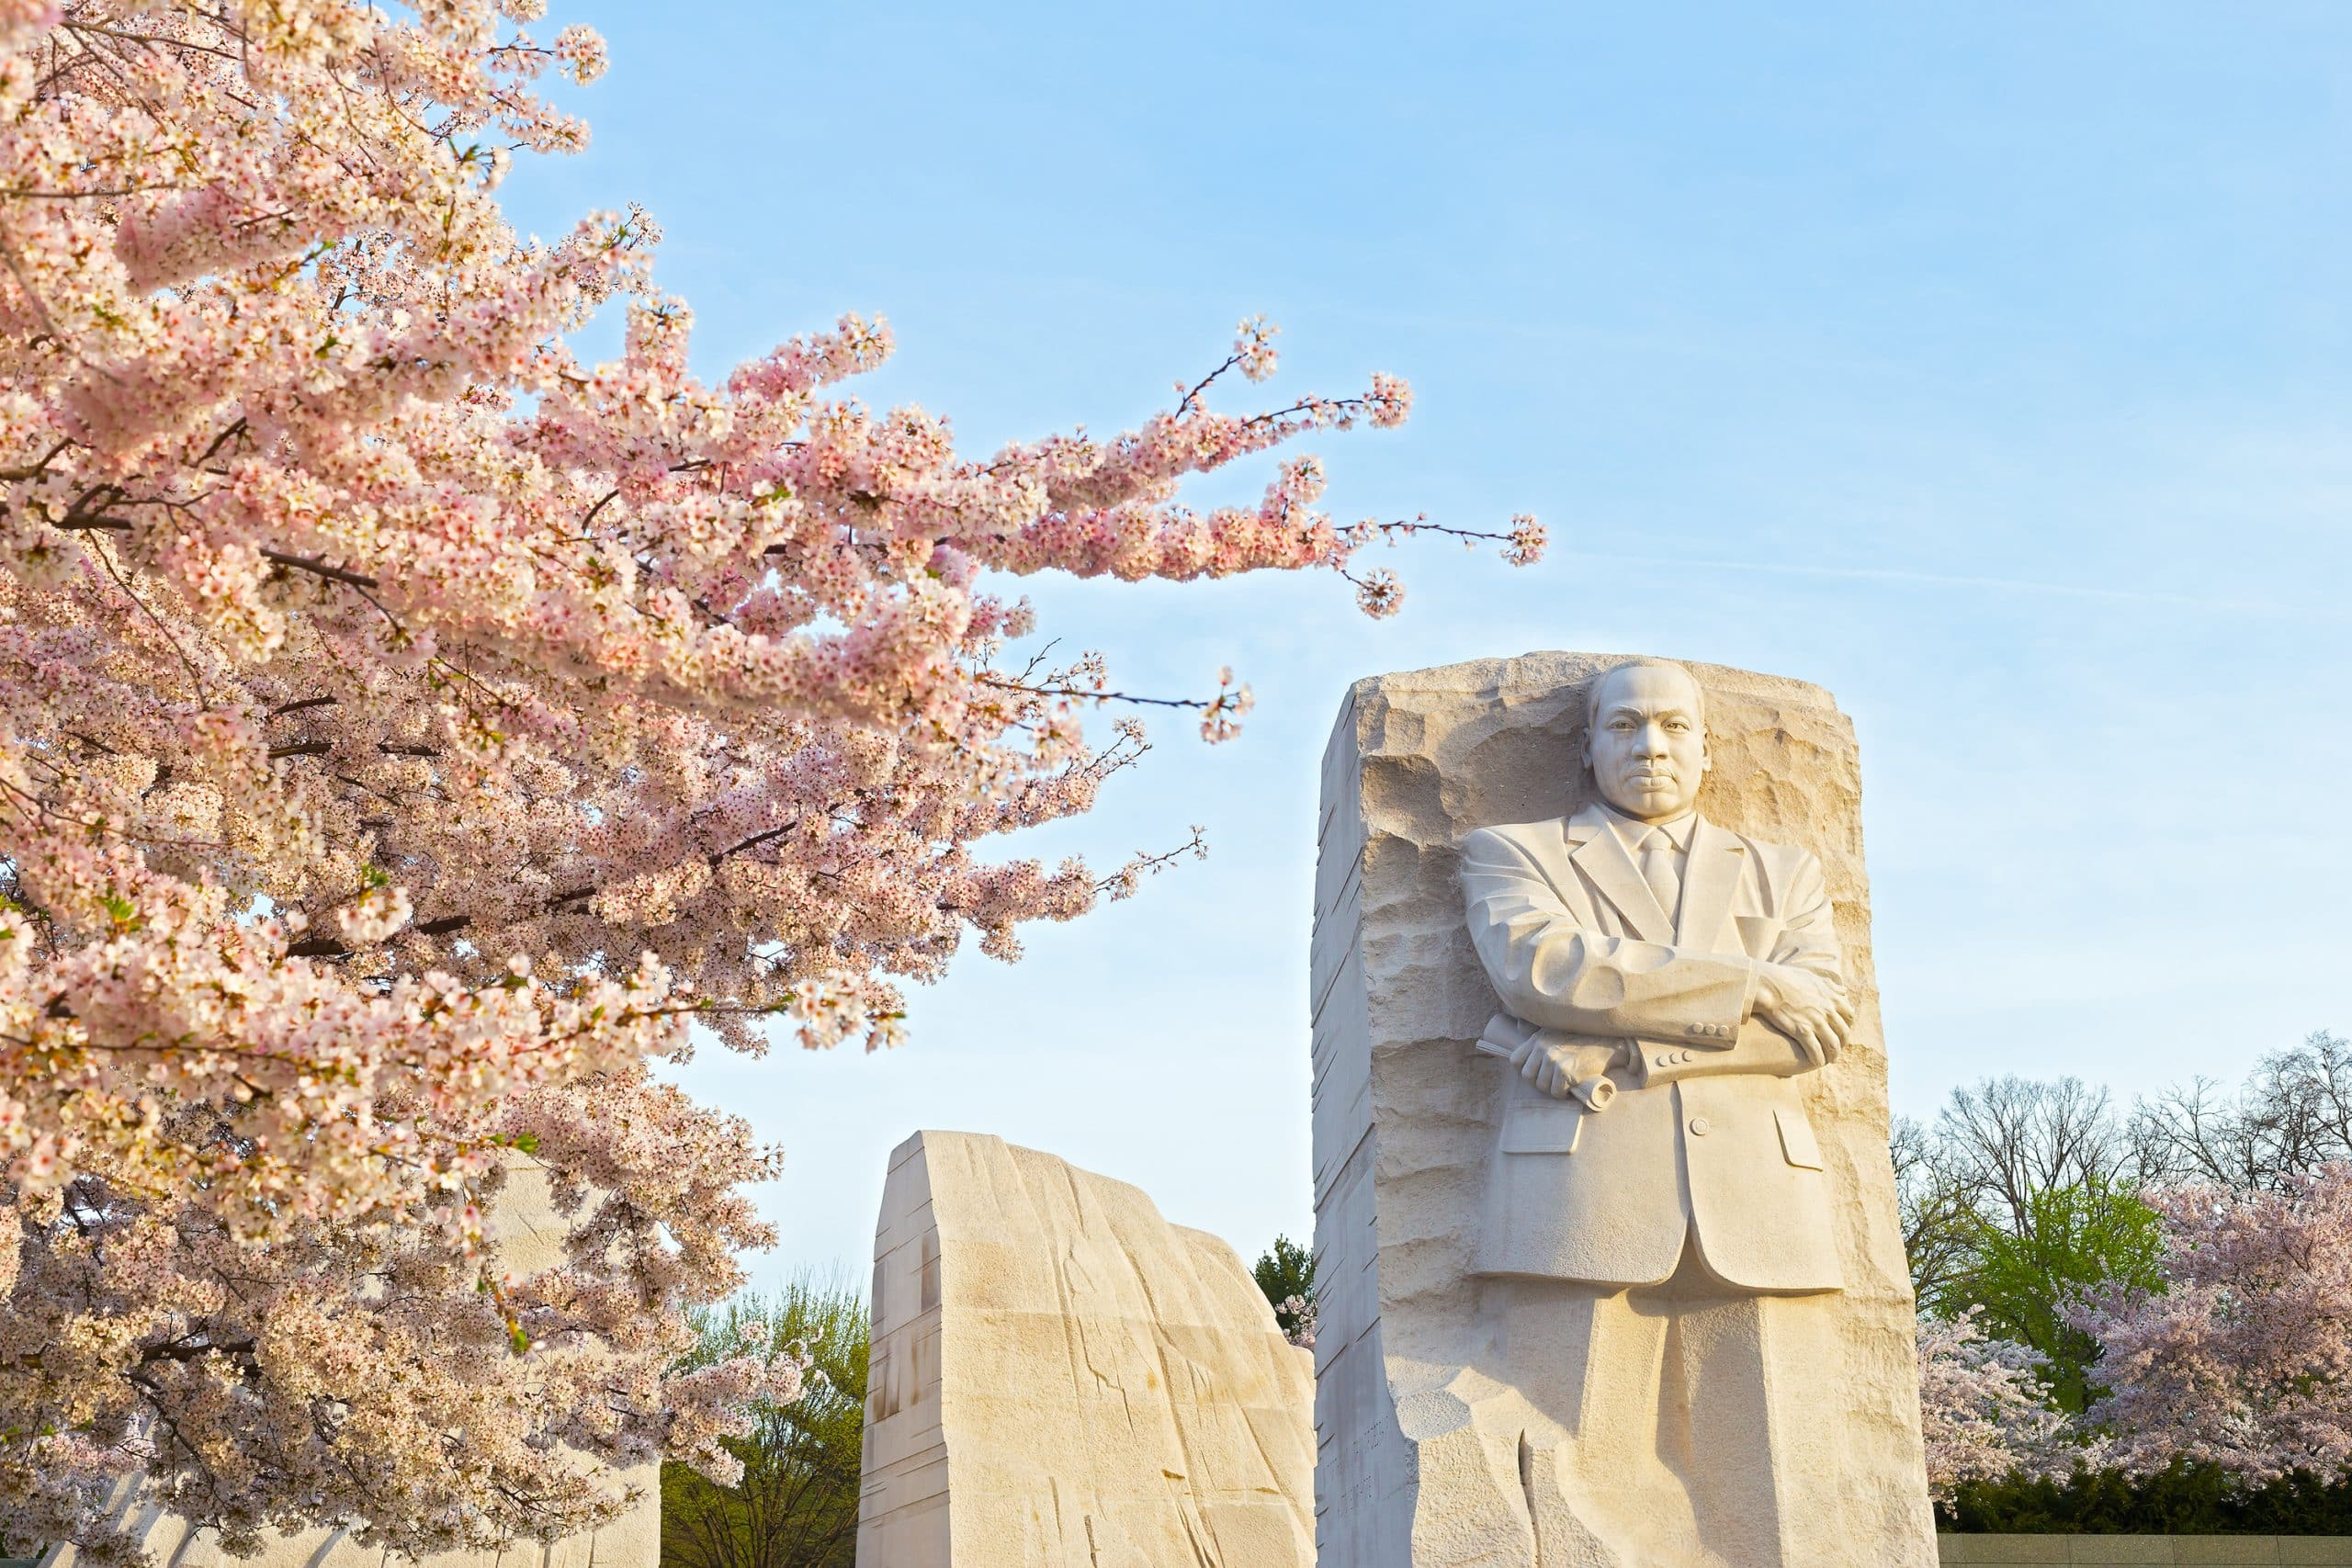 Curious Nature: The National Park Service and celebrating civil rights leader Martin Luther King